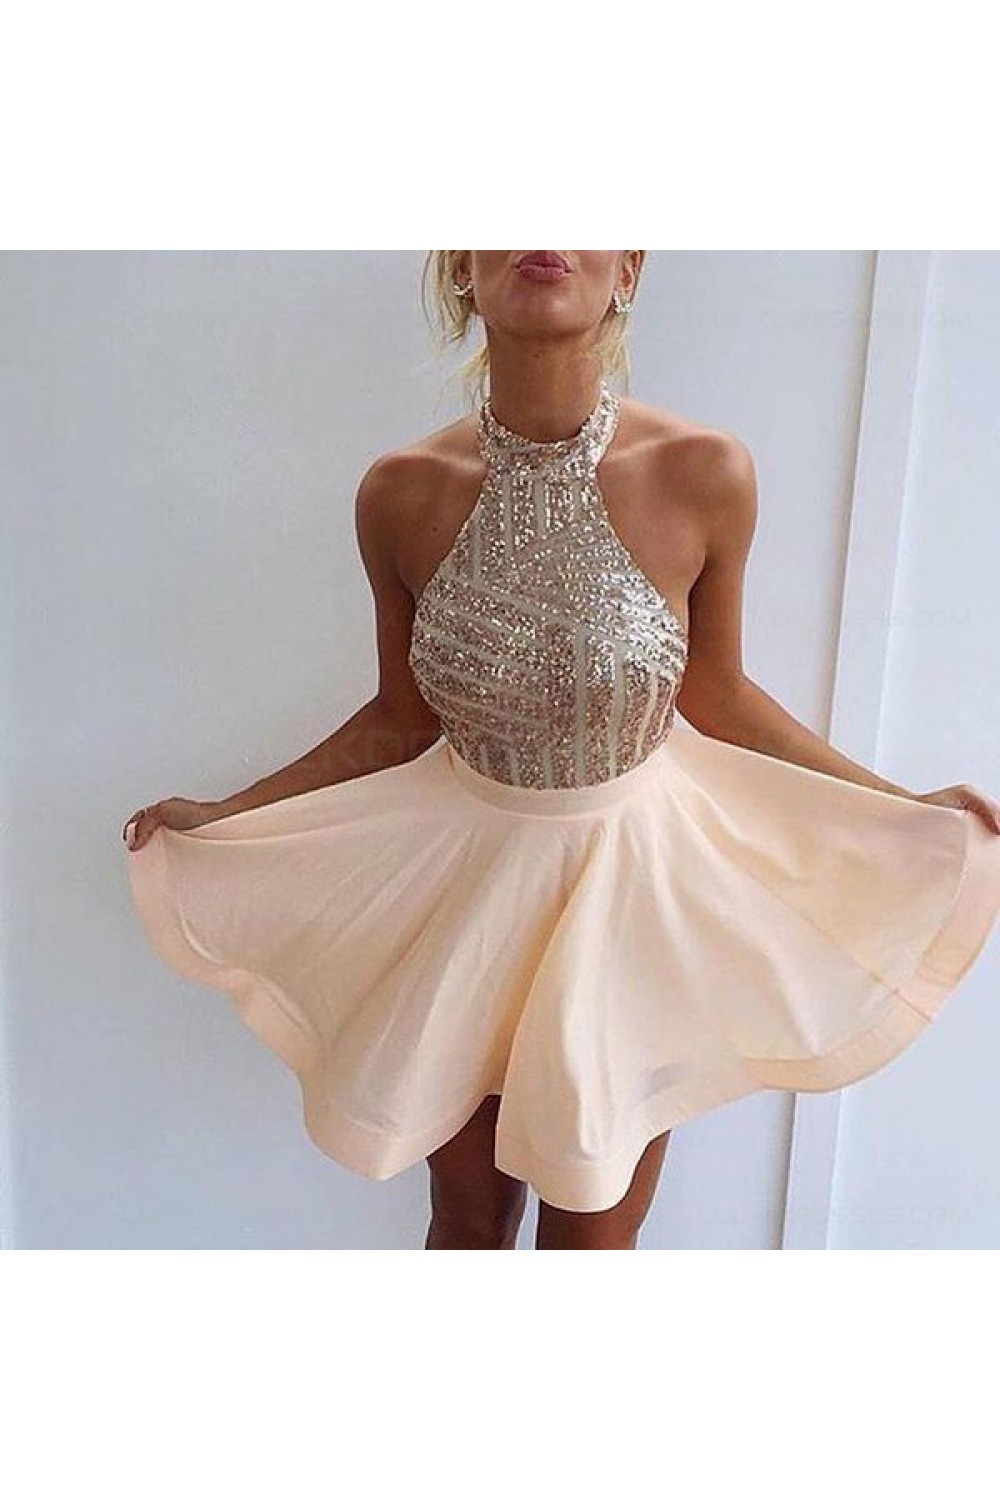 2a1a9ab3e77 Halter Sequins Short Backless Homecoming Cocktail Prom Dresses Evening Gowns  3020204